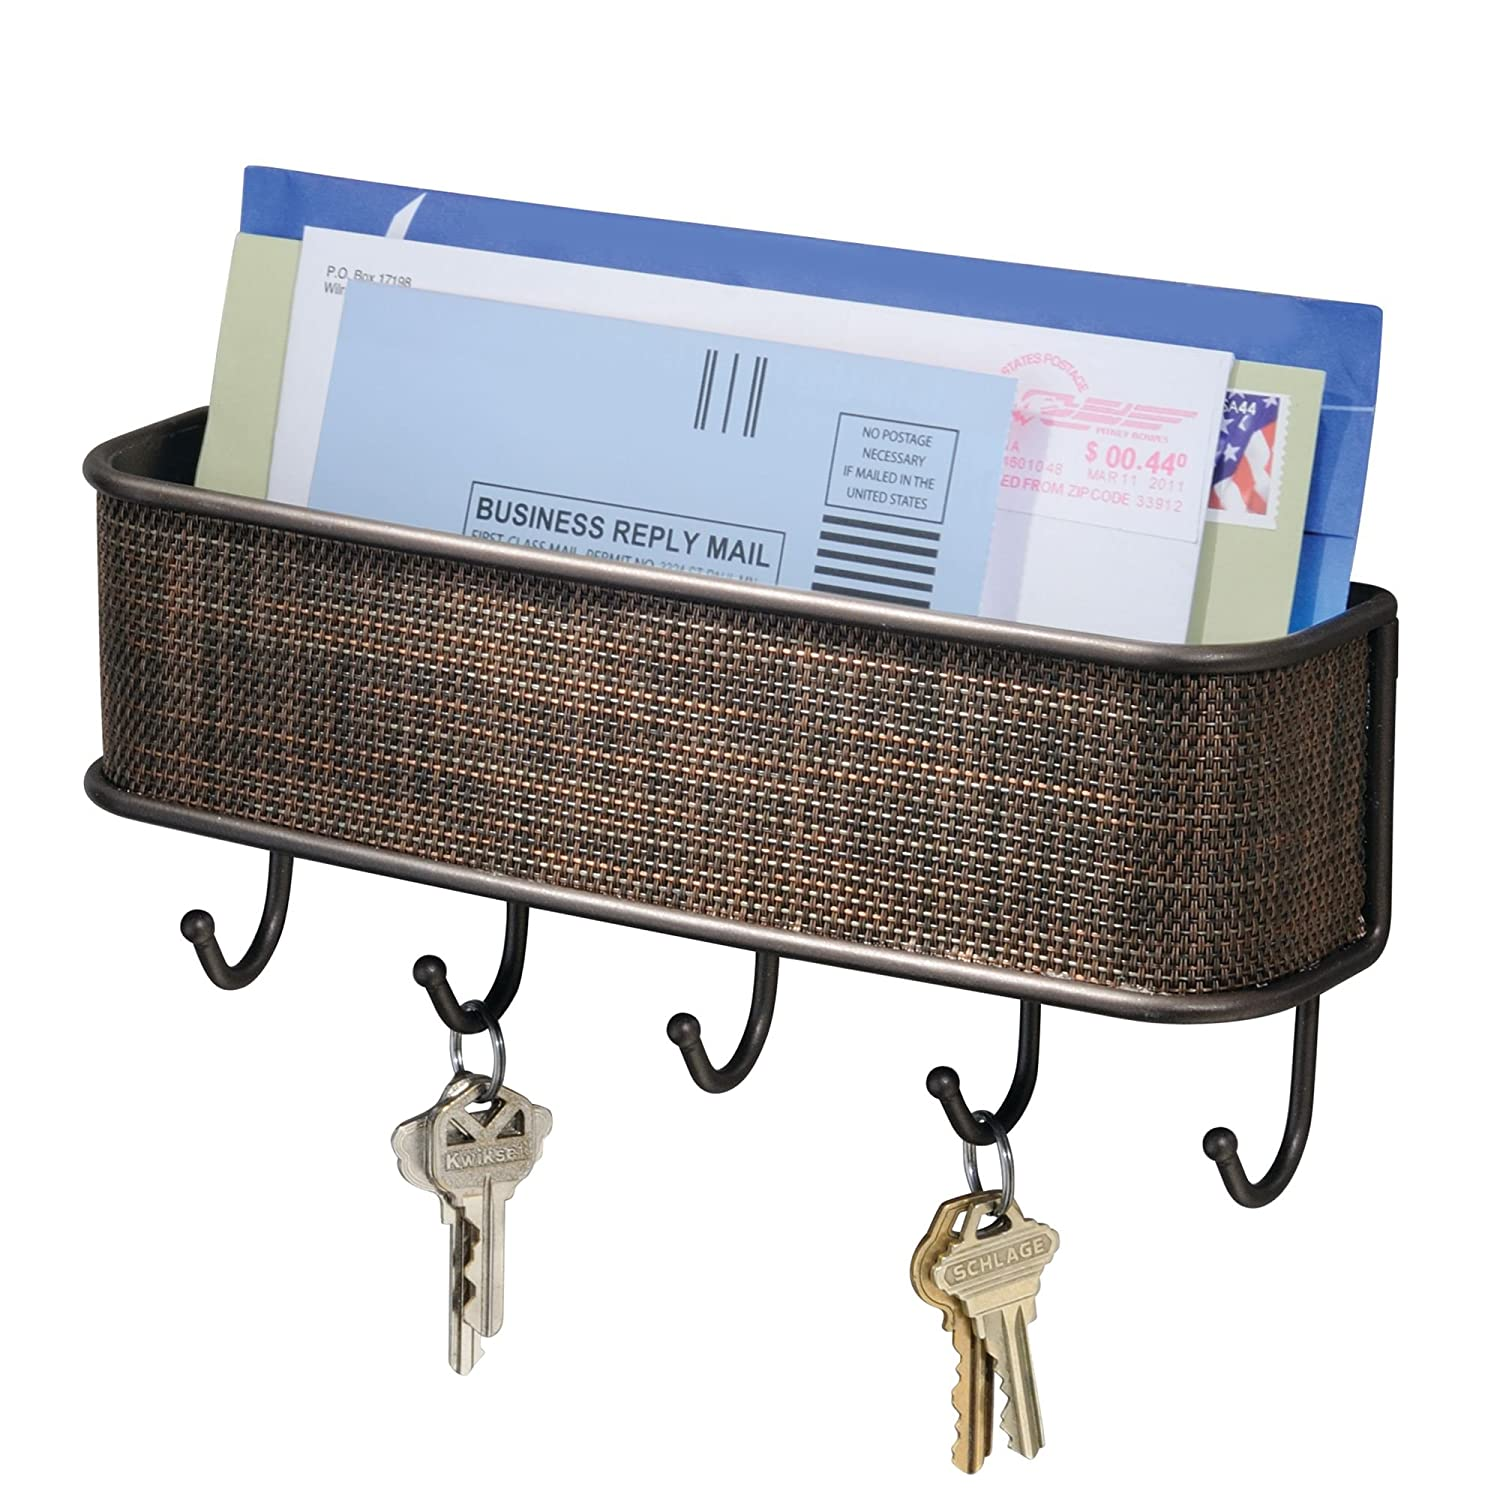 """InterDesign Twillo Mail, Decorative Wall Mounted Key Rack Pocket and Letter Sorter Holder for Entryway, Kitchen, Mudroom, Home Office Organization, 10.5"""" x 2.5"""" x 4.5"""", Bronze"""